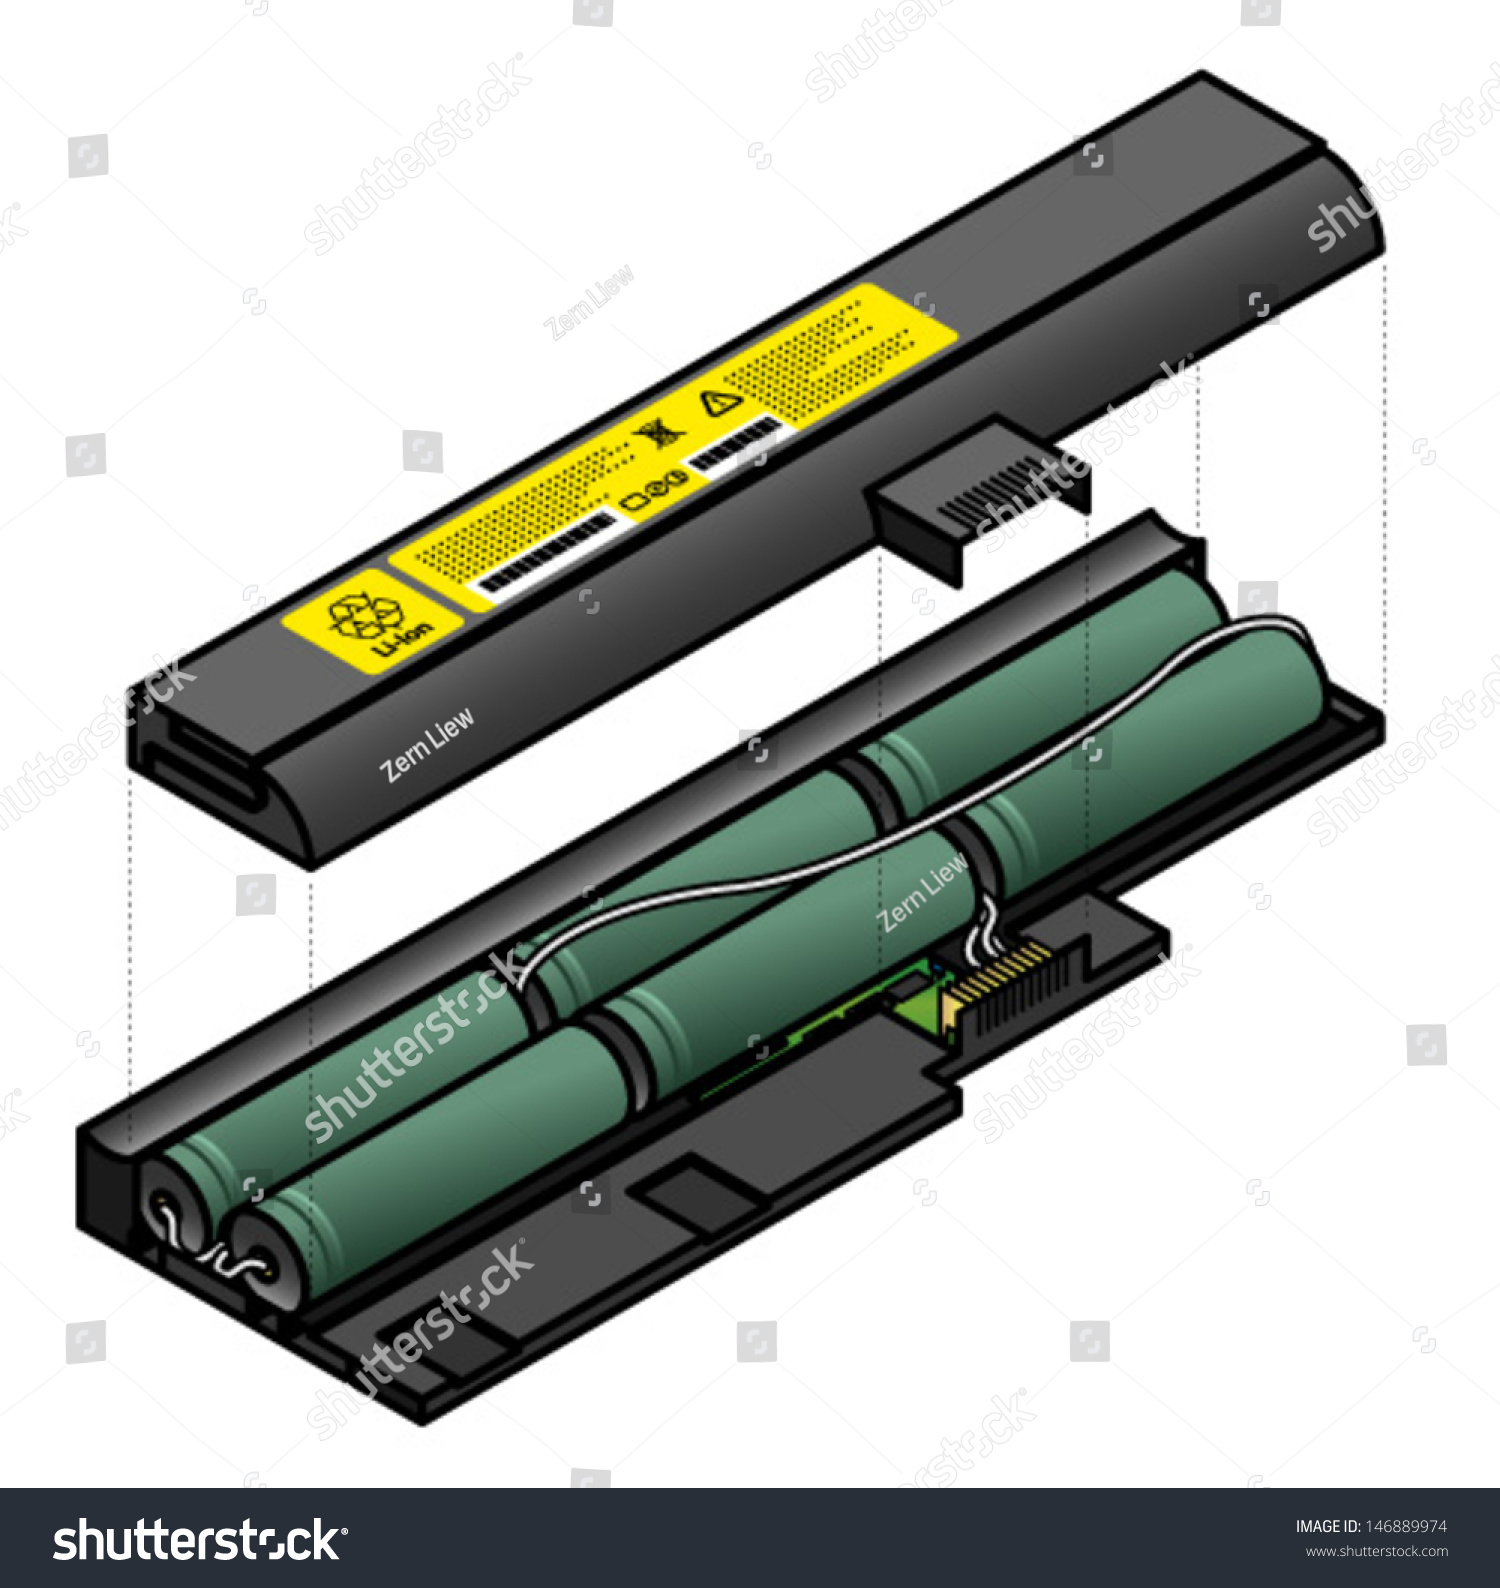 Diagram showing the inside components of a laptop battery.